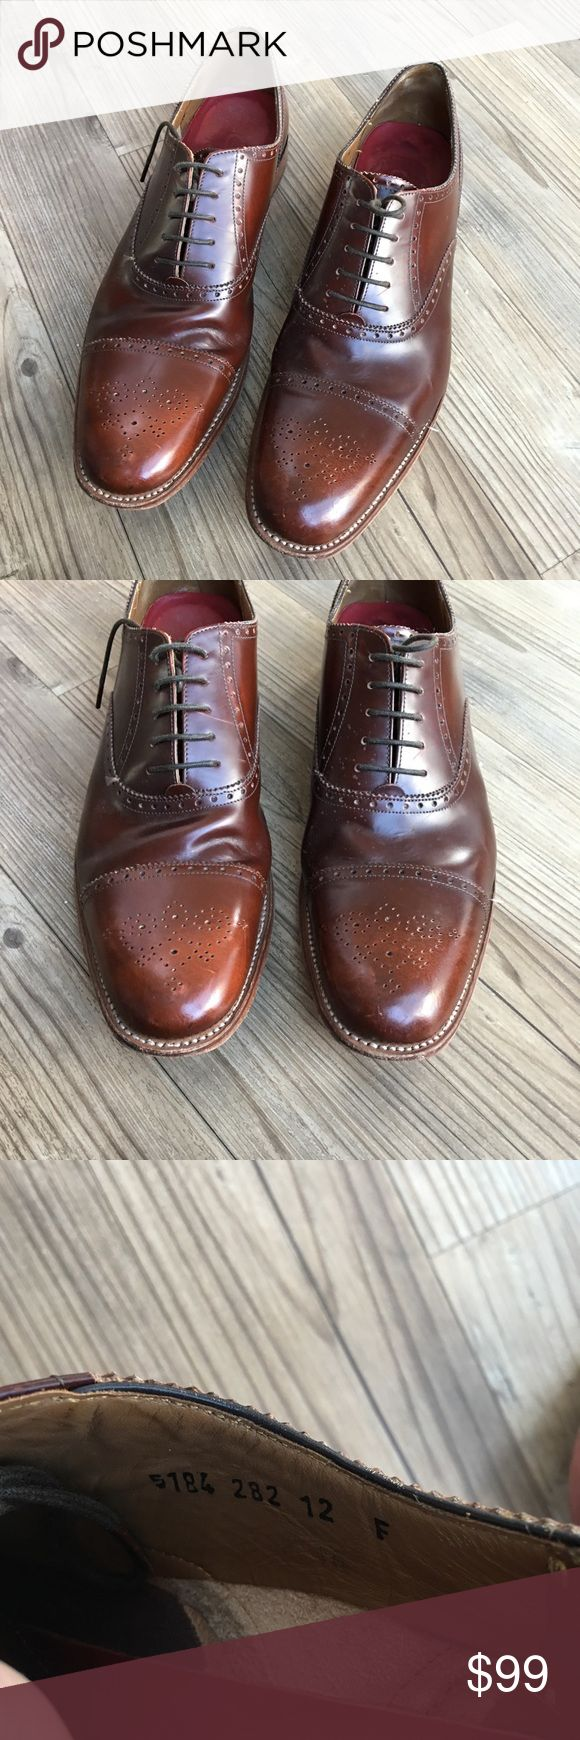 Grenson England Cap Toe Oxfords Pre-owned Men's Grenson Cap Toe Oxford Dress Shoes Grenson England Oxfords Retail Price $325 Style: Matthew Size UK 12 F - please see sizing chart photo in listing - Says US size 13 Brown Barely worn No box or bag Slight signs of being worn as only used a few times Calf Leather Goodyear heels Non-smoking home Grenson Shoes Oxfords & Derbys